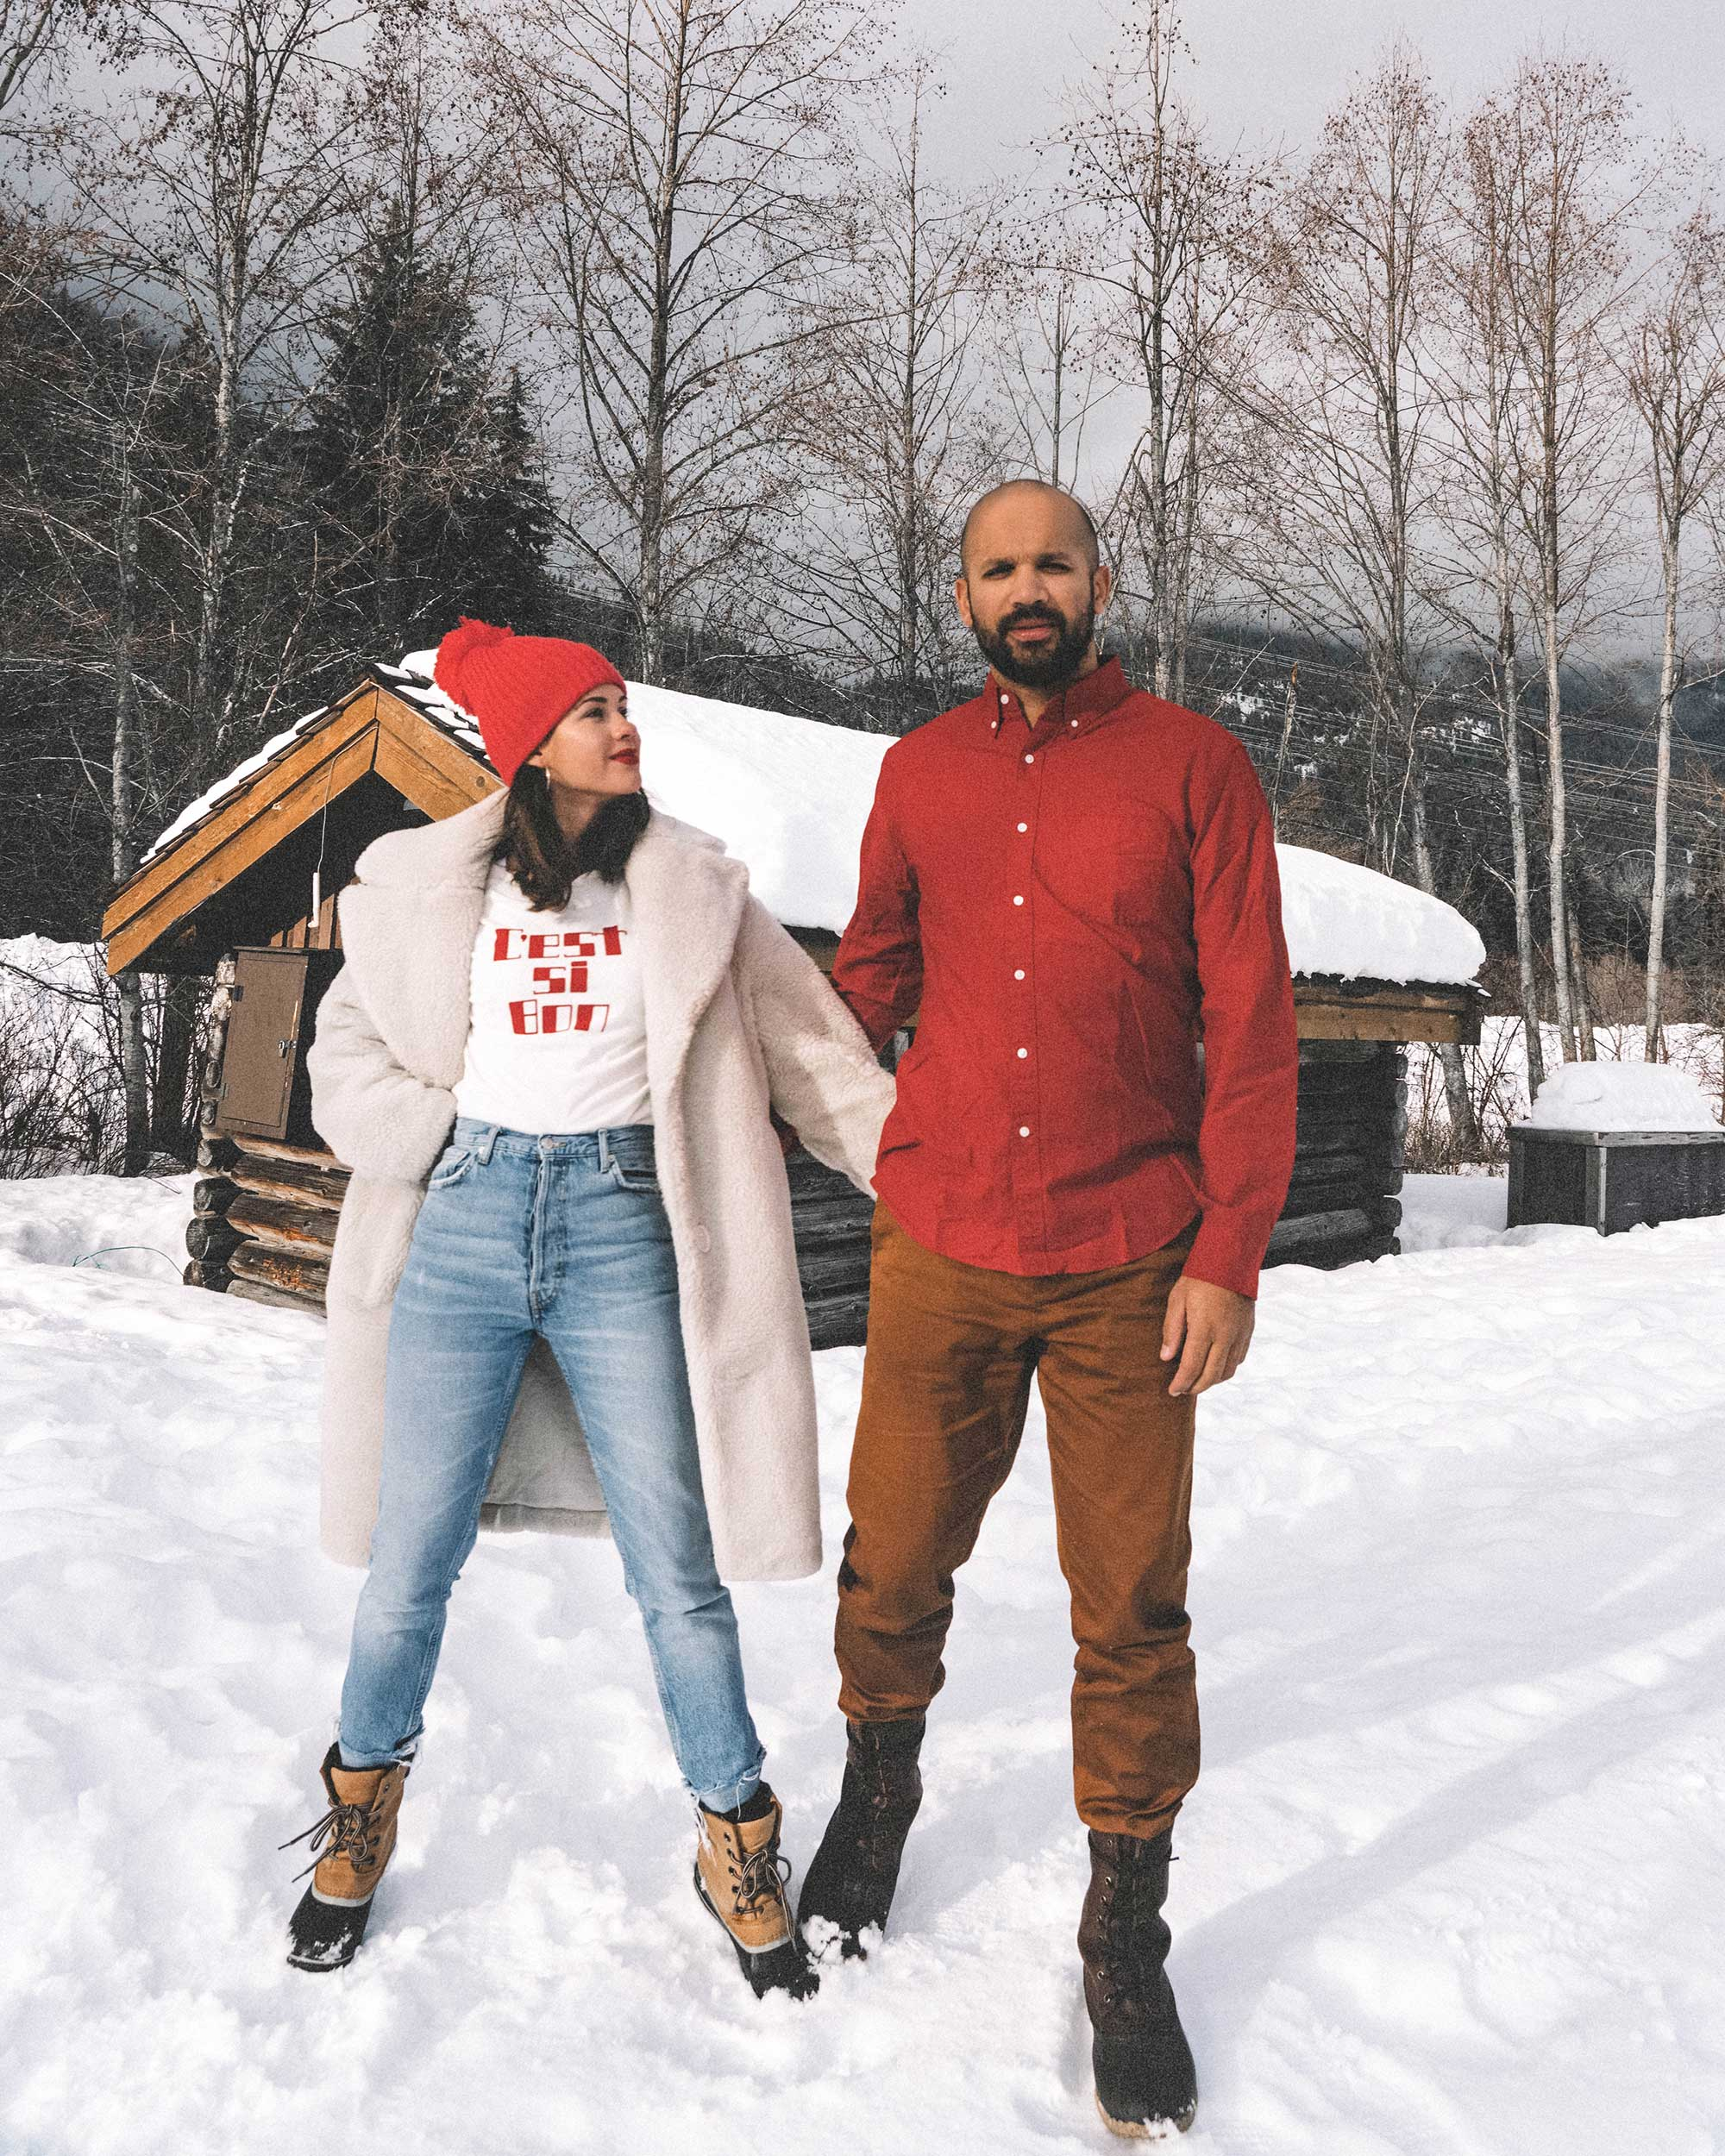 couples Winter snow outfit white faux shearling coat and sorel boots with jeans whislter canada2.jpg